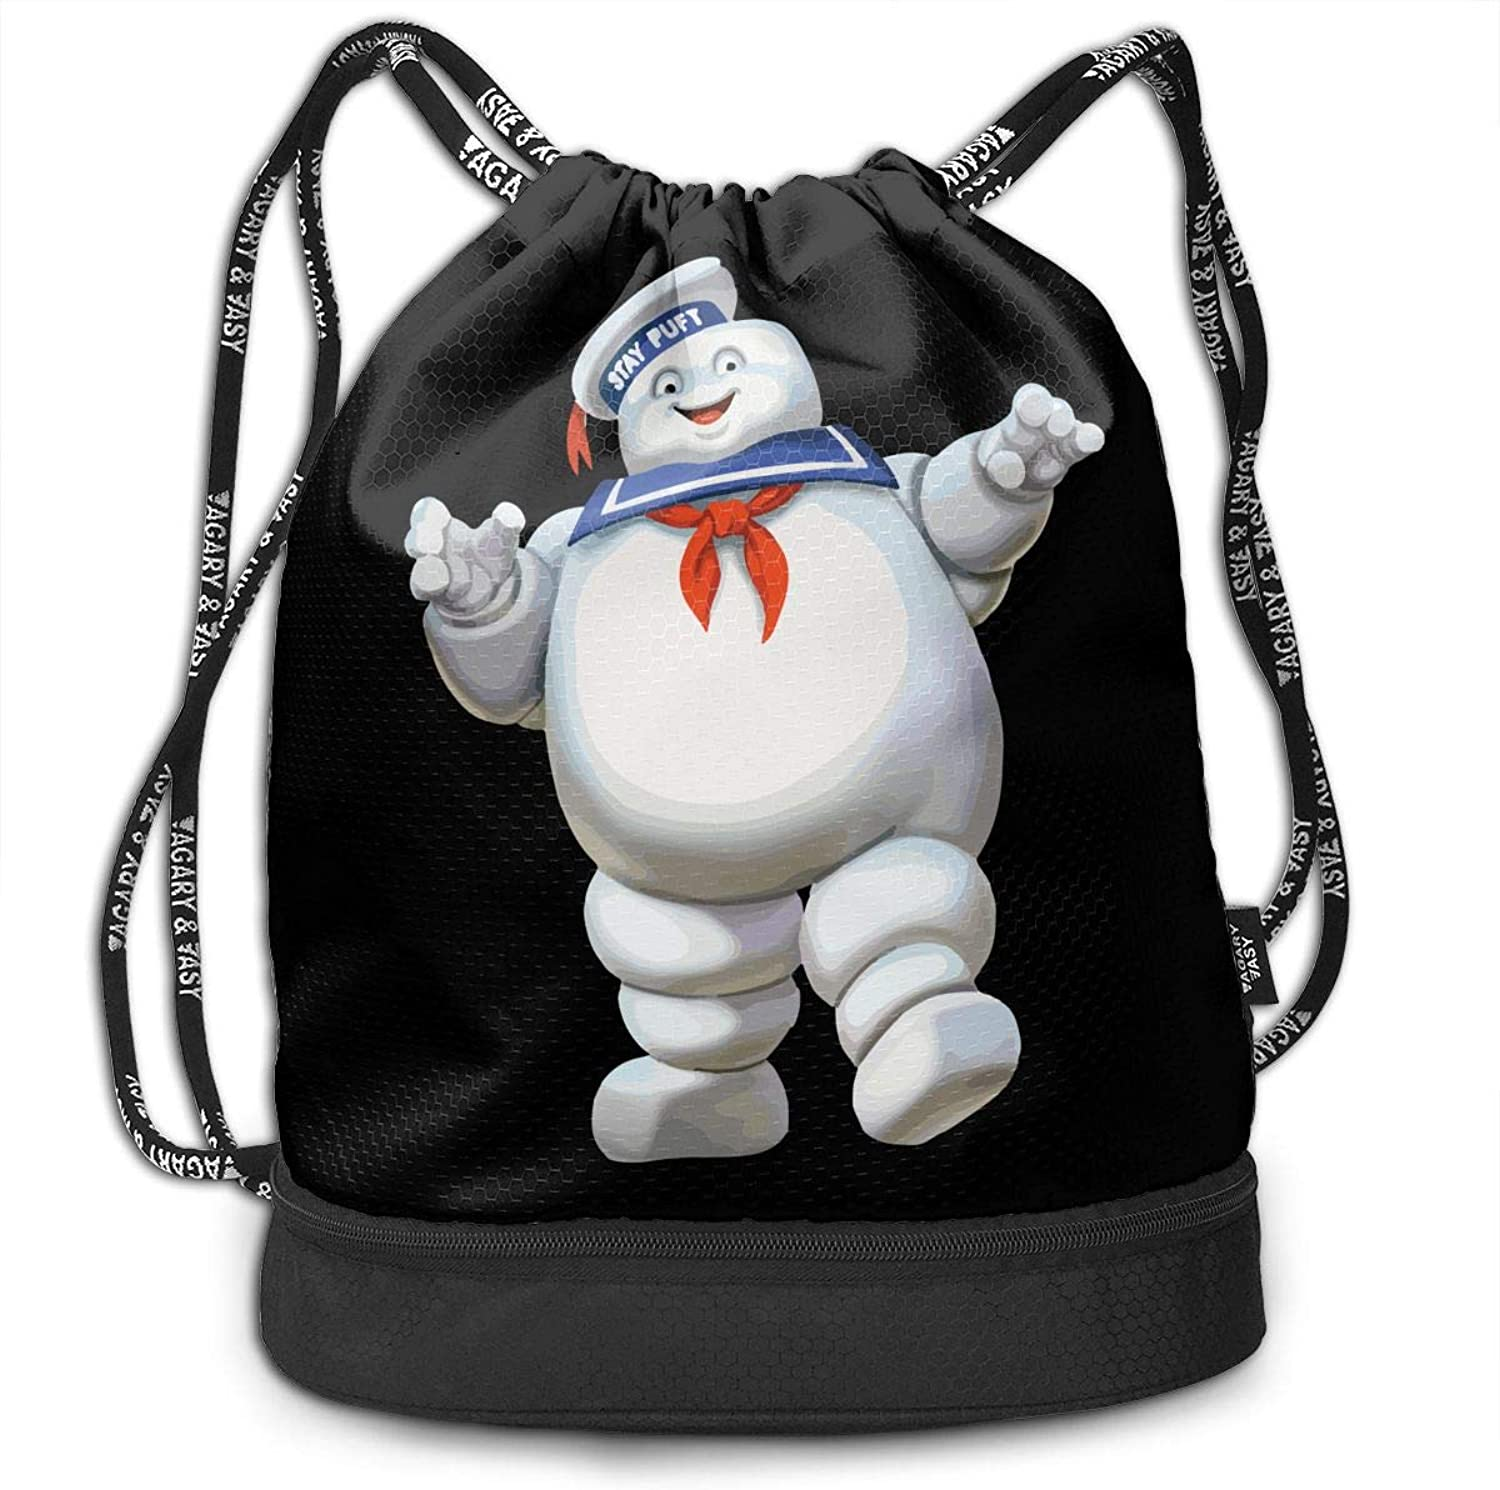 Cheny Drawstring Backpack Ghostbusters Stay Googly Sports Gym Cinch Sack Bag for Kids Men and Women Shoulder Bags